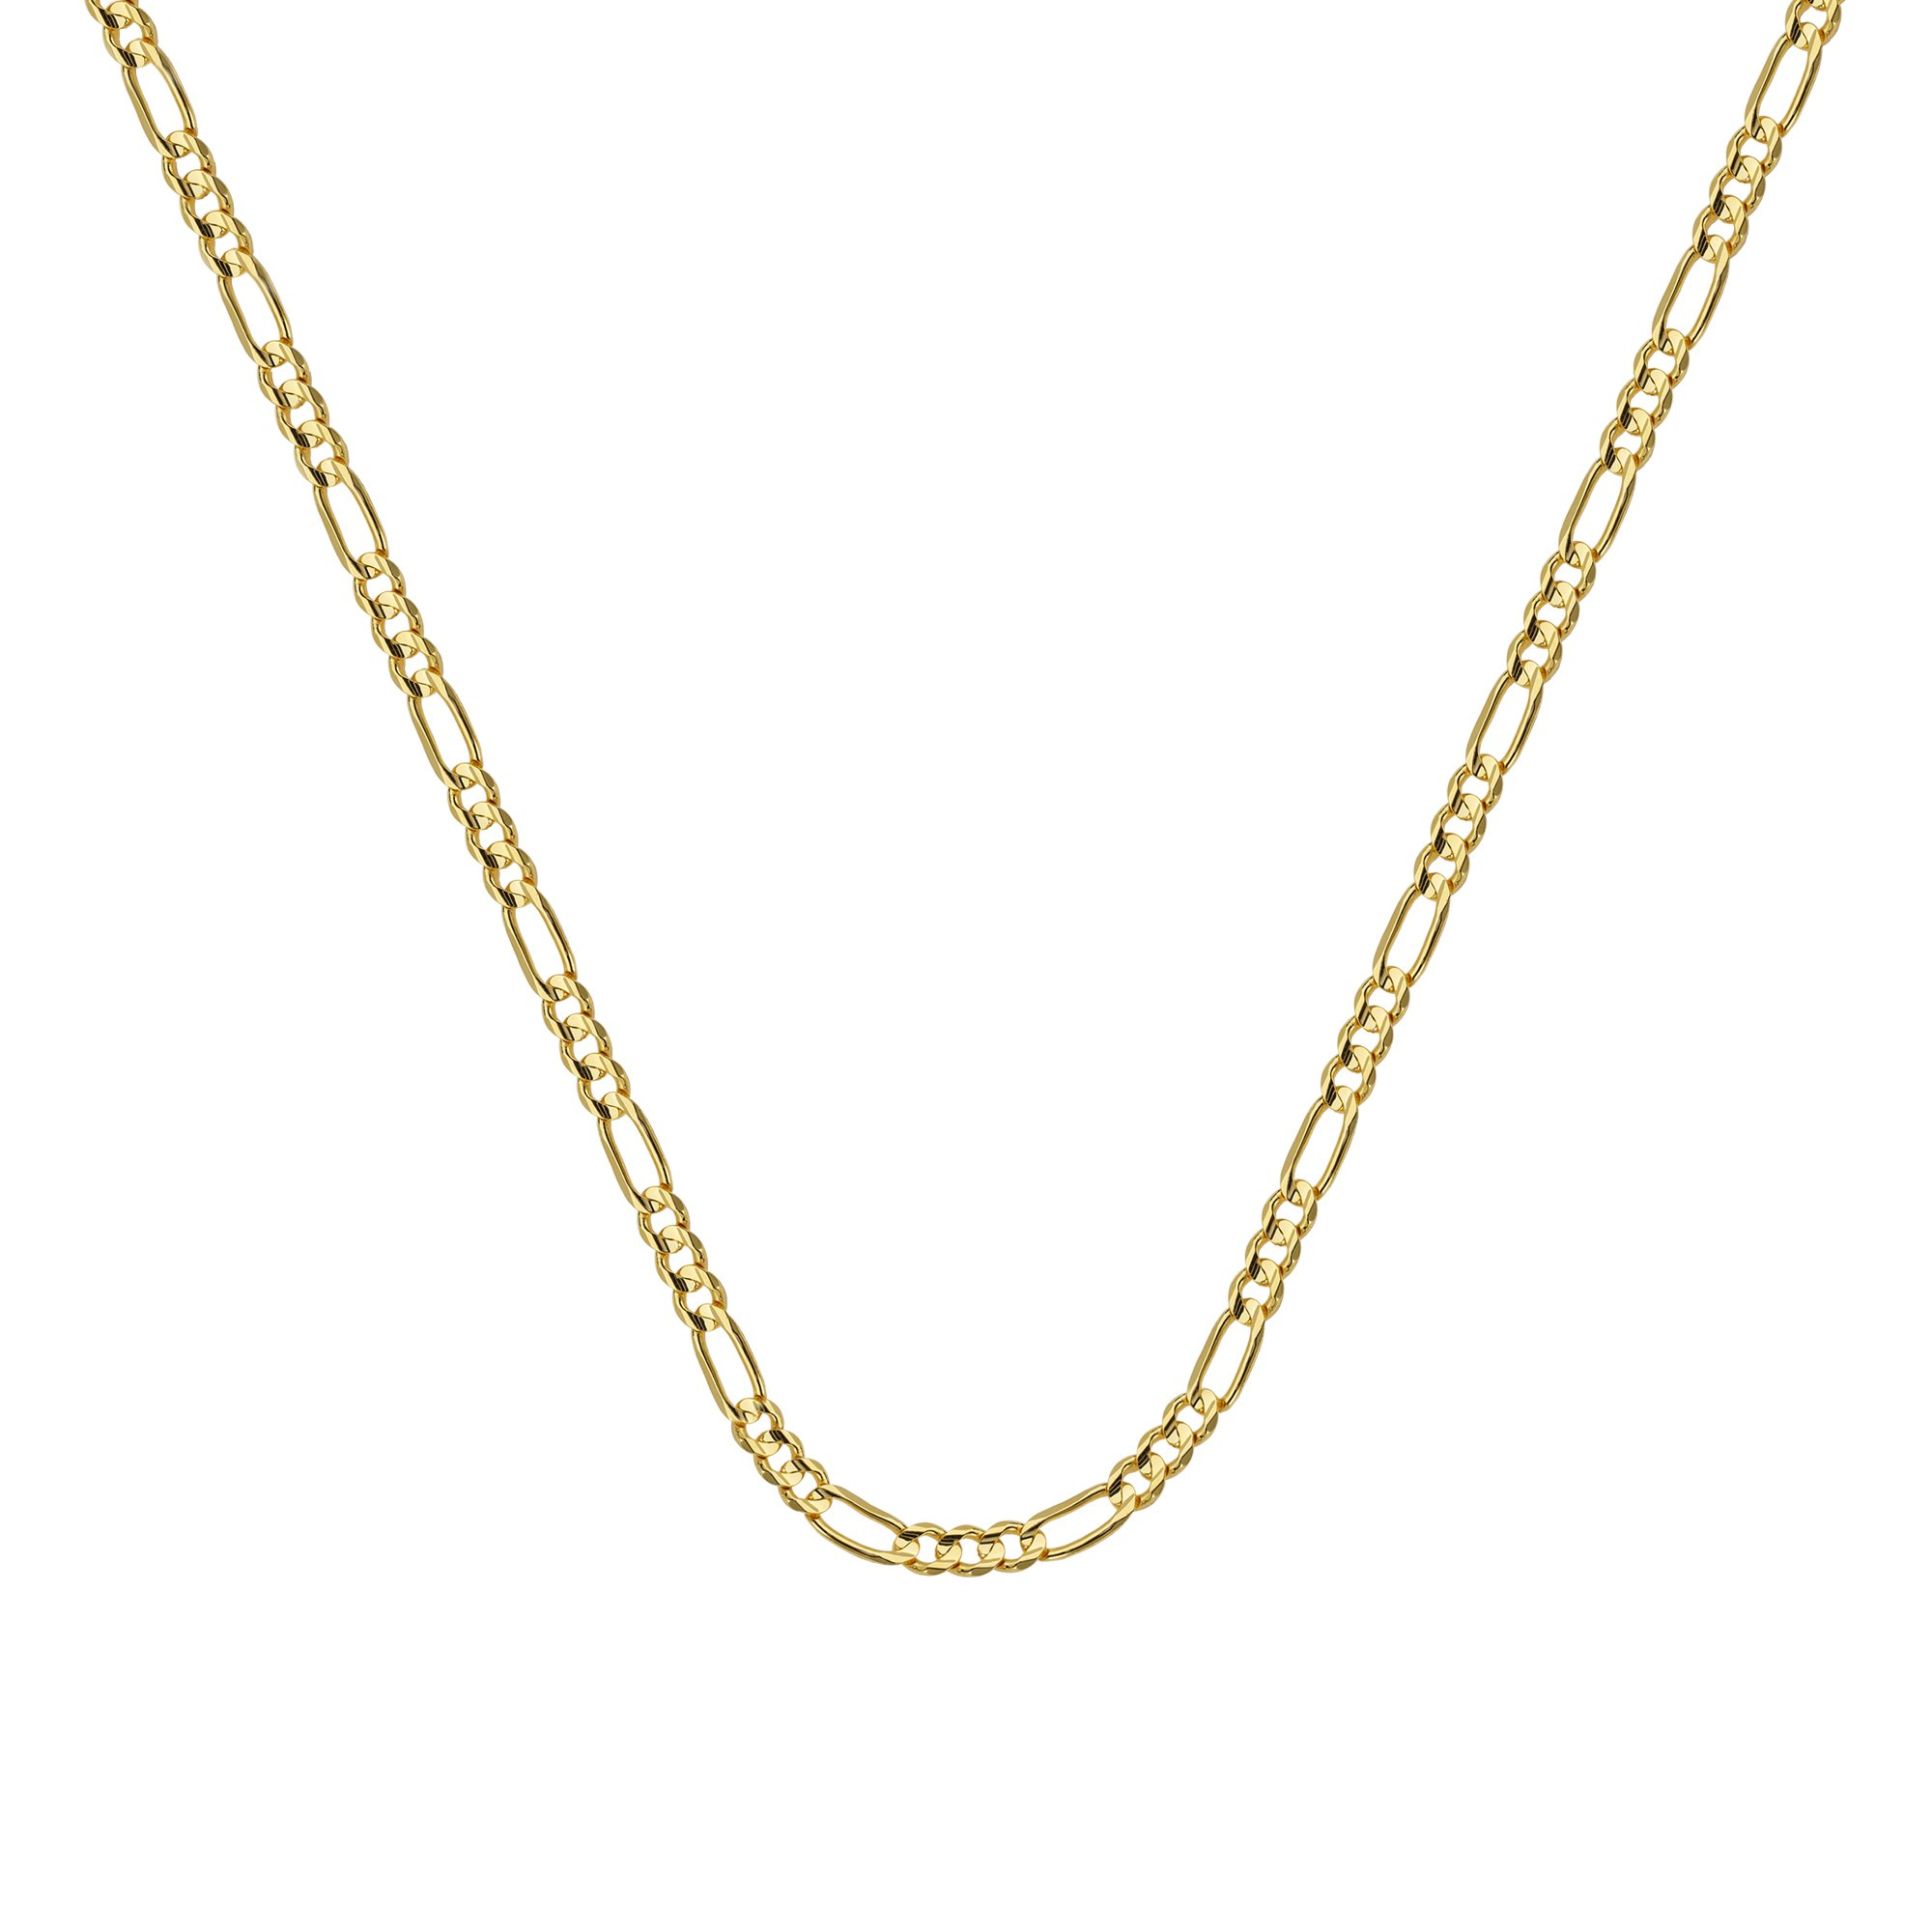 FIGARO CHAIN , 14KT GOLD FIGARO CHAIN / 24'' INCHES LONG